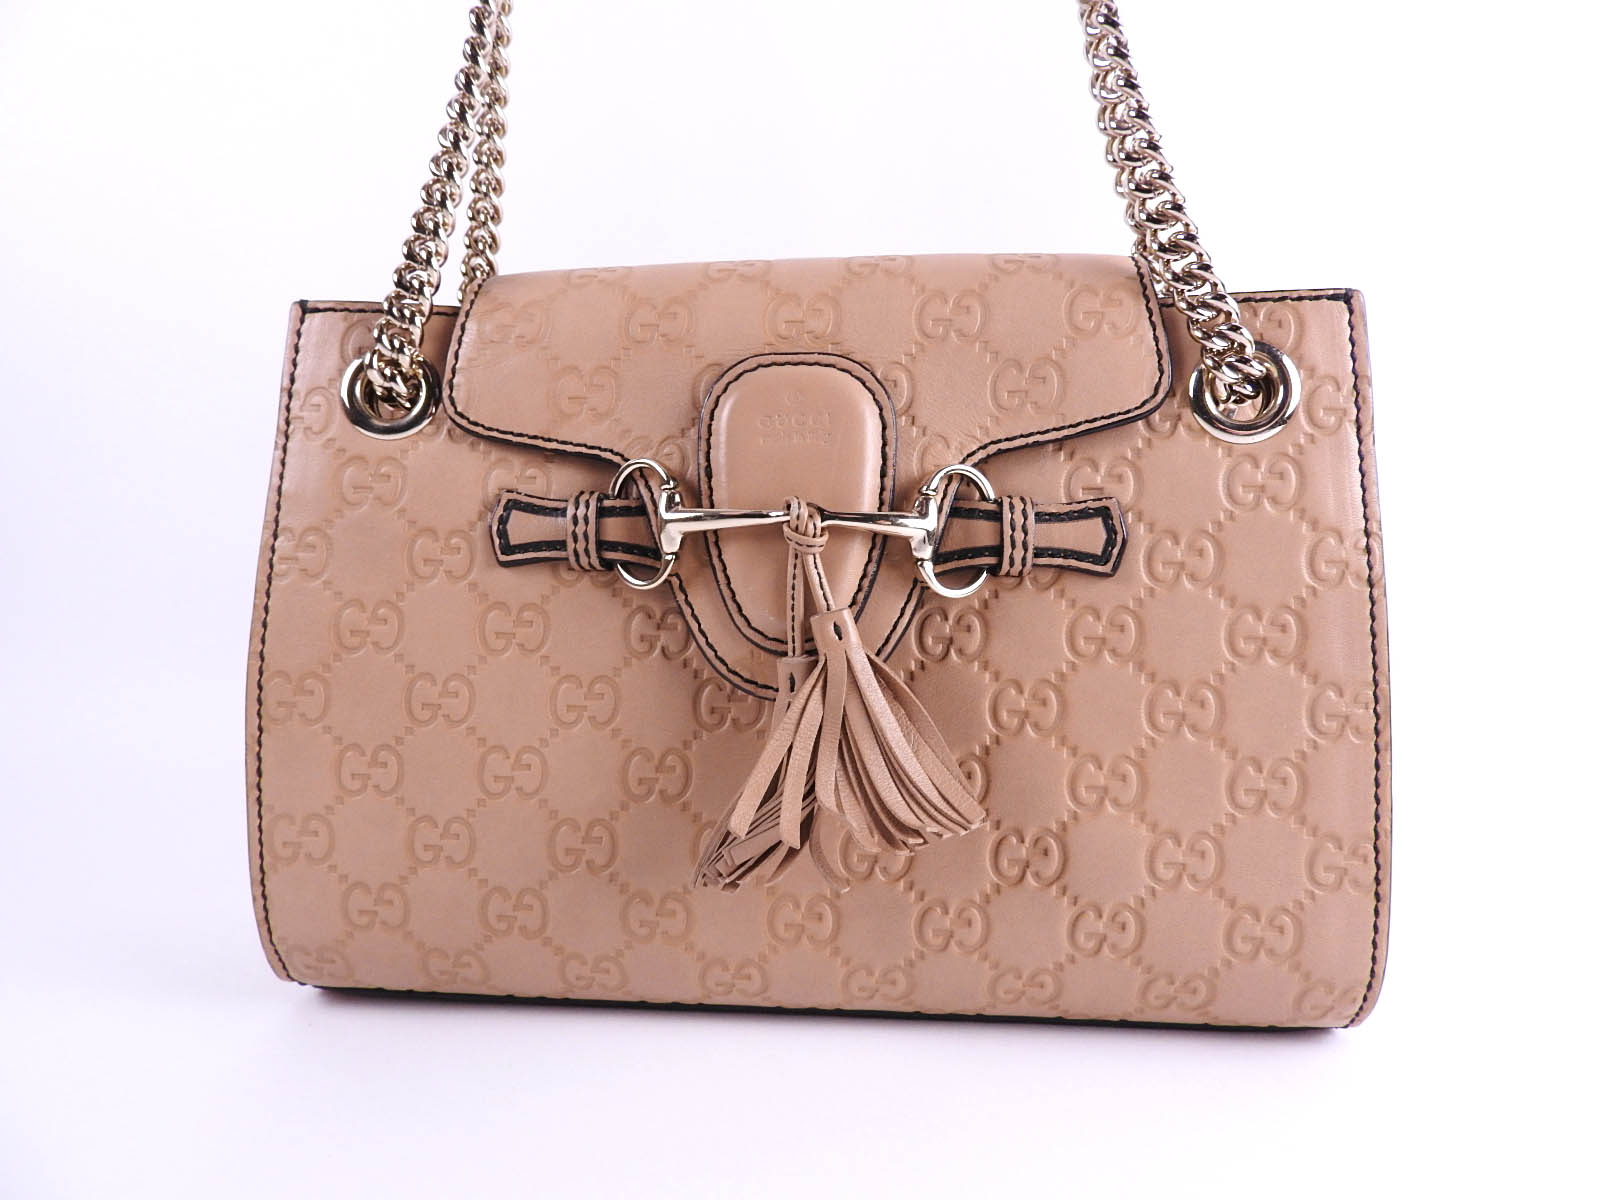 984baffbad217f Auth GUCCI Emily Guccissima Chain Shoulder Bag Calf Leather Beige Gold  369621 A-9528